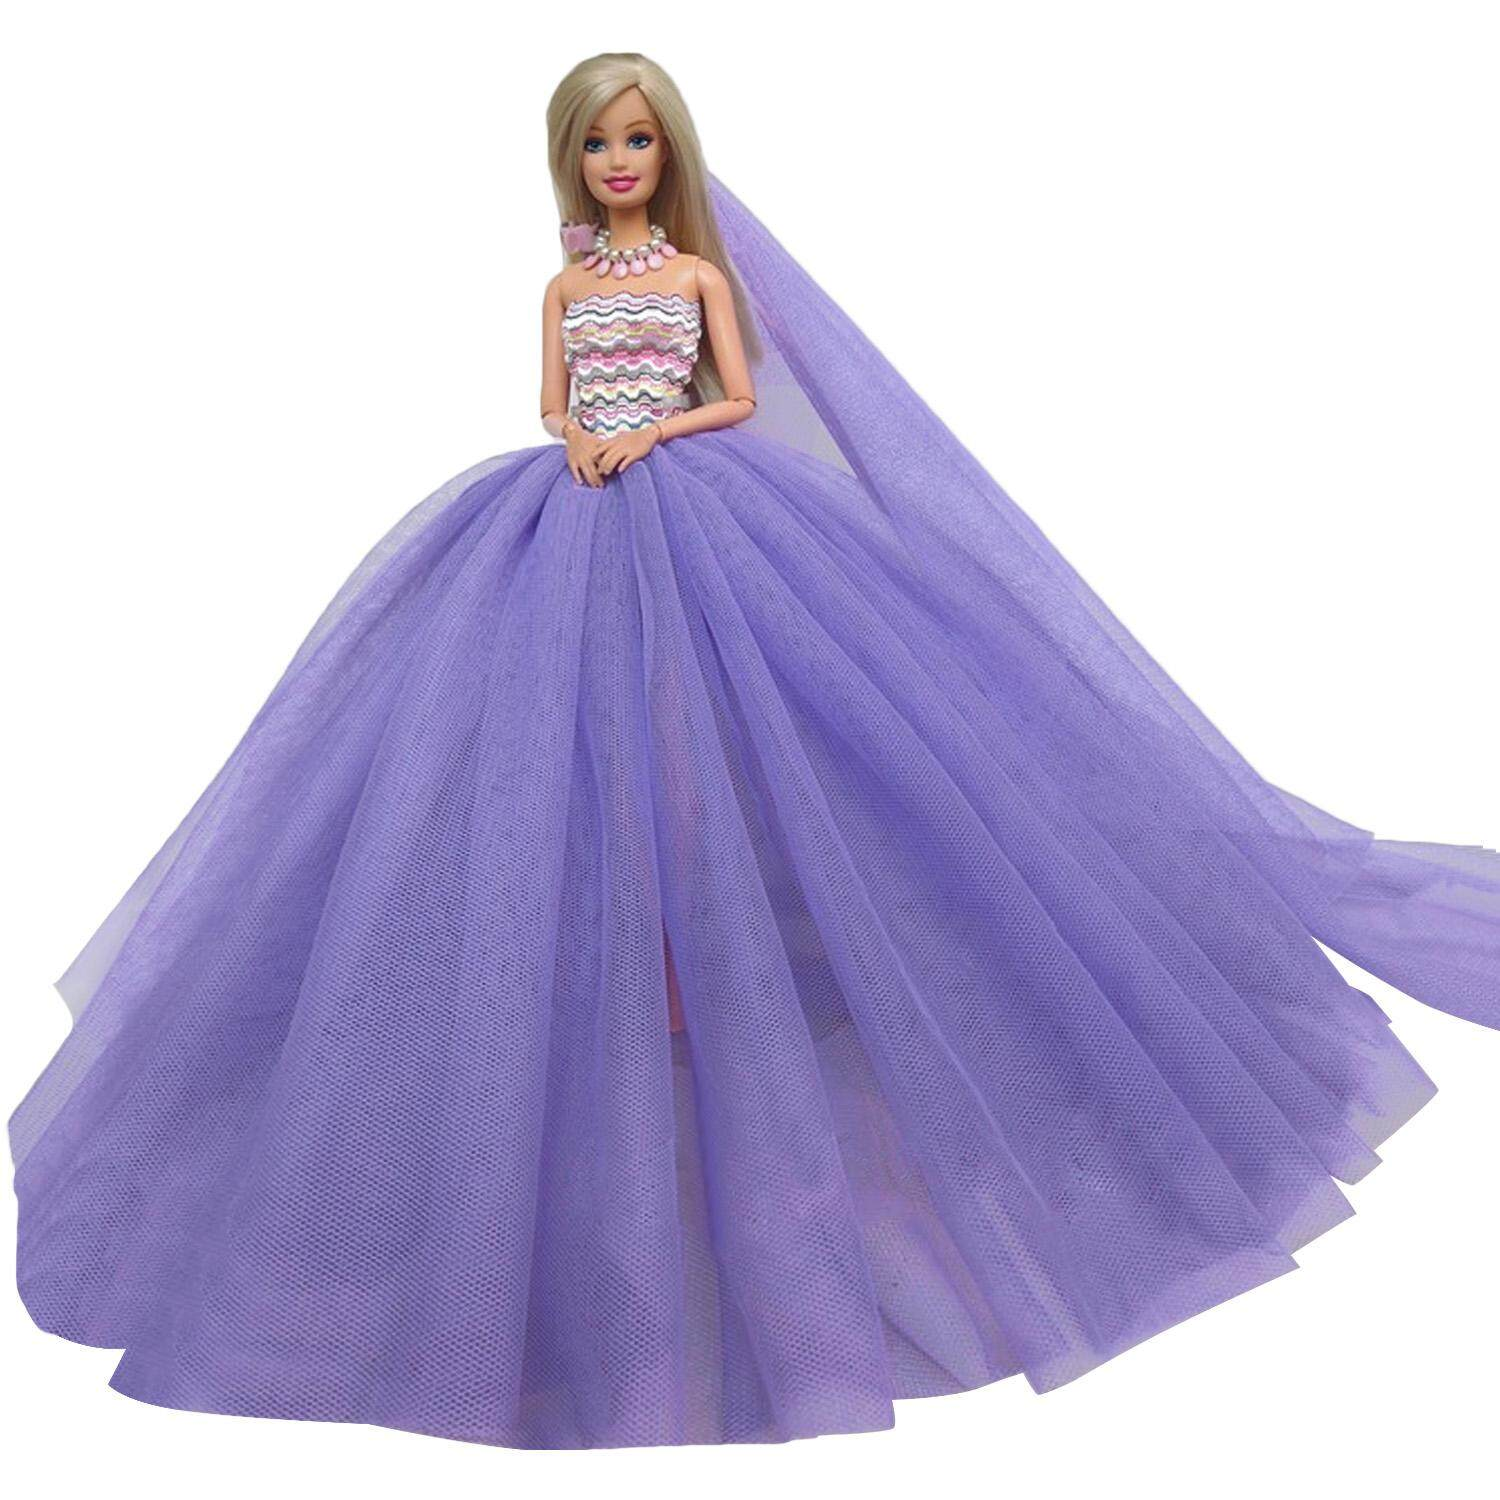 Fashion Wedding Party Dress Outfit Clothes Costume for Barbie Dolls Accessories Children Girls Birthday Festival Gift